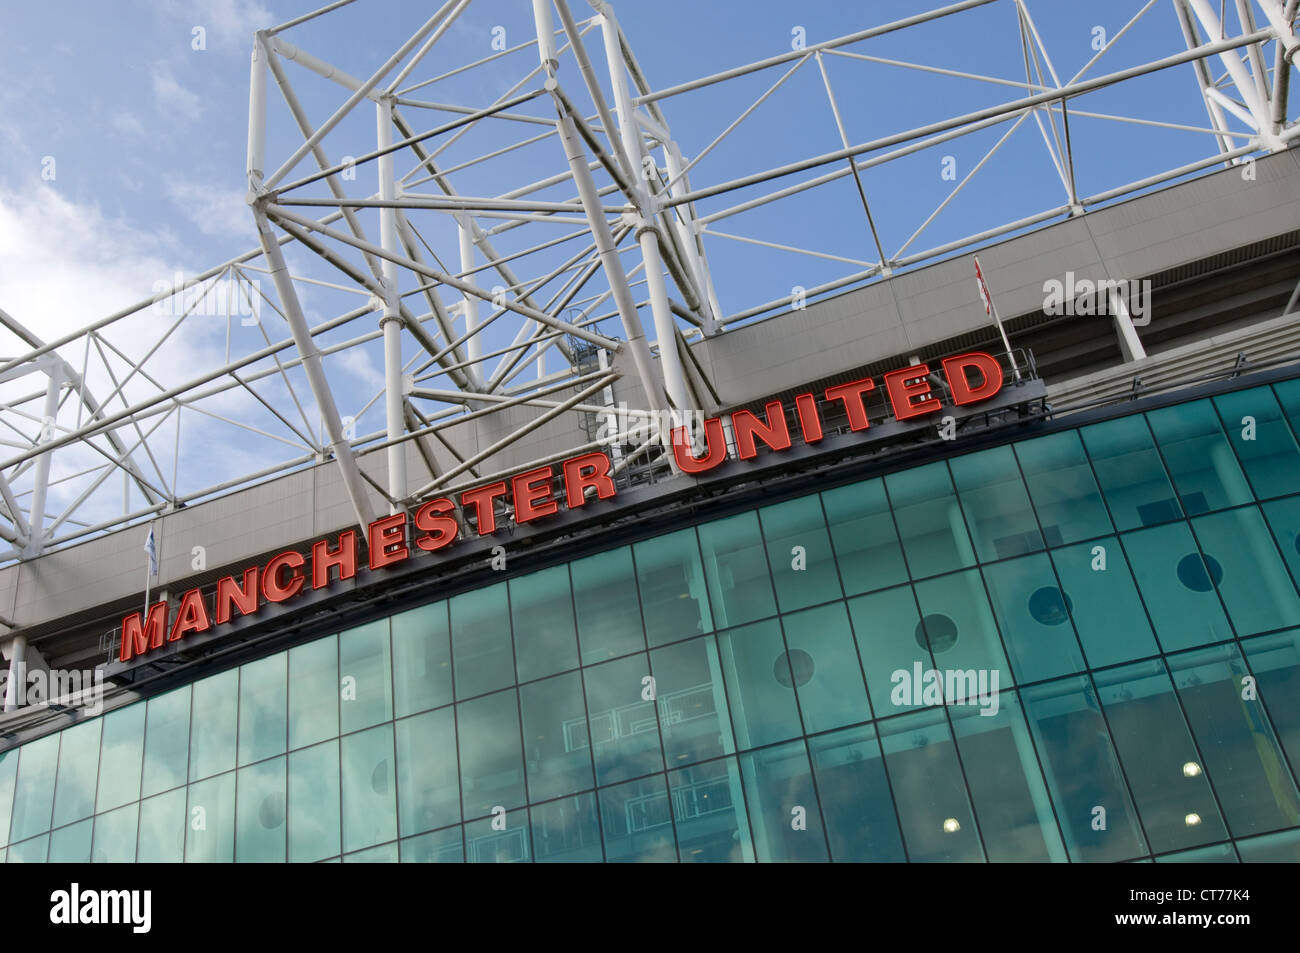 detail of Manchester United Football Club's stadium Old Trafford - Stock Image